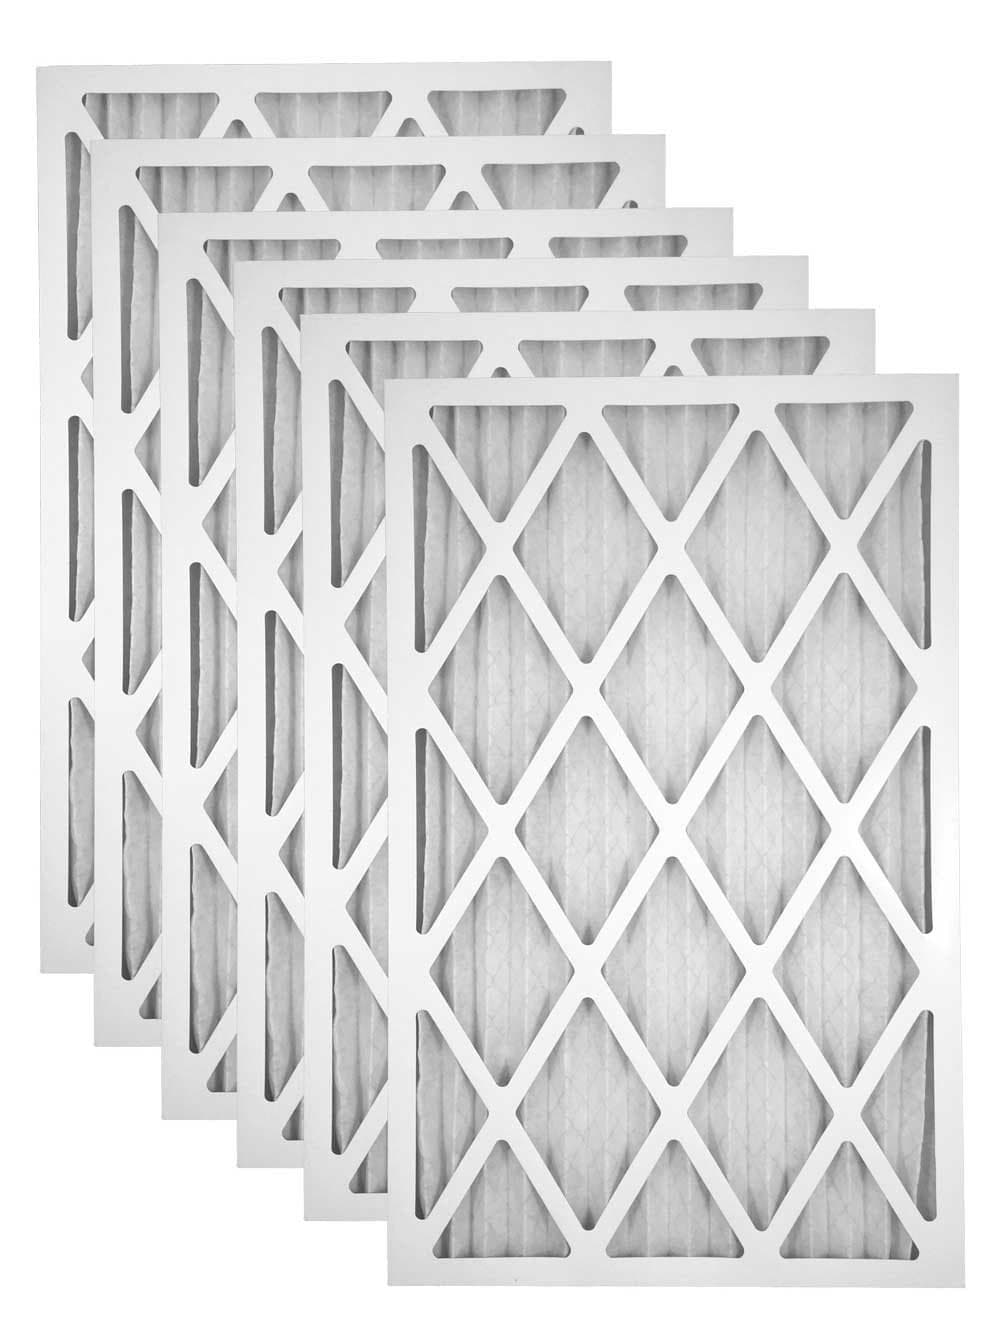 20x25x1 Merv 11 Pleated AC Furnace Filter - Case of 6